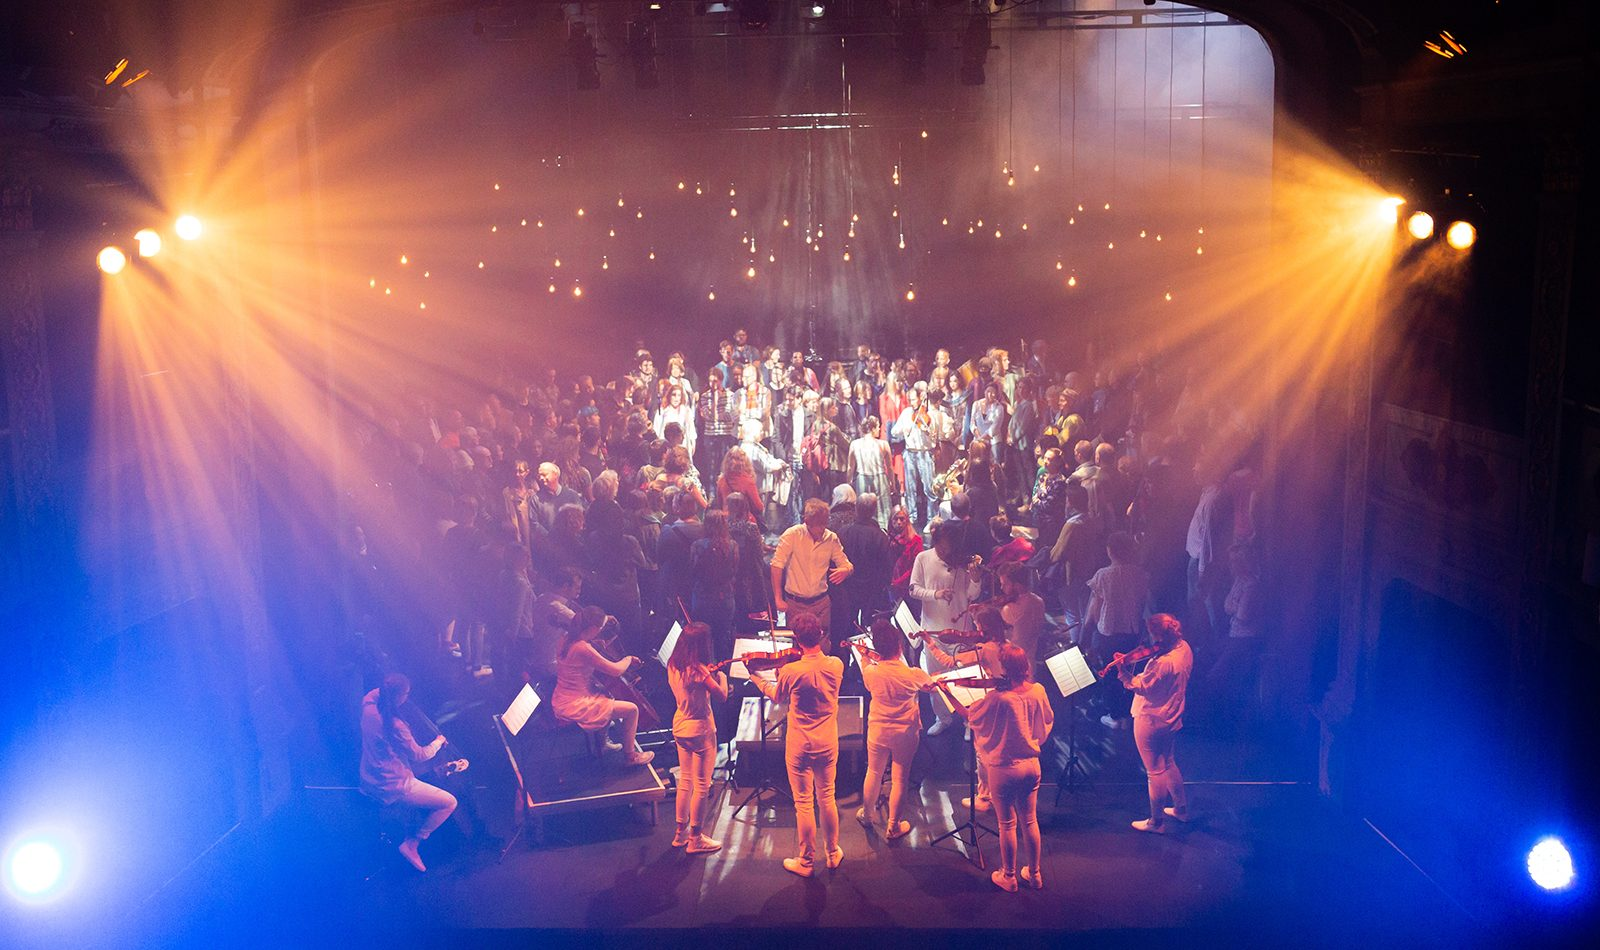 Looking down on a stage lit with blue and yellow, string players, conductor and audience mill in the background